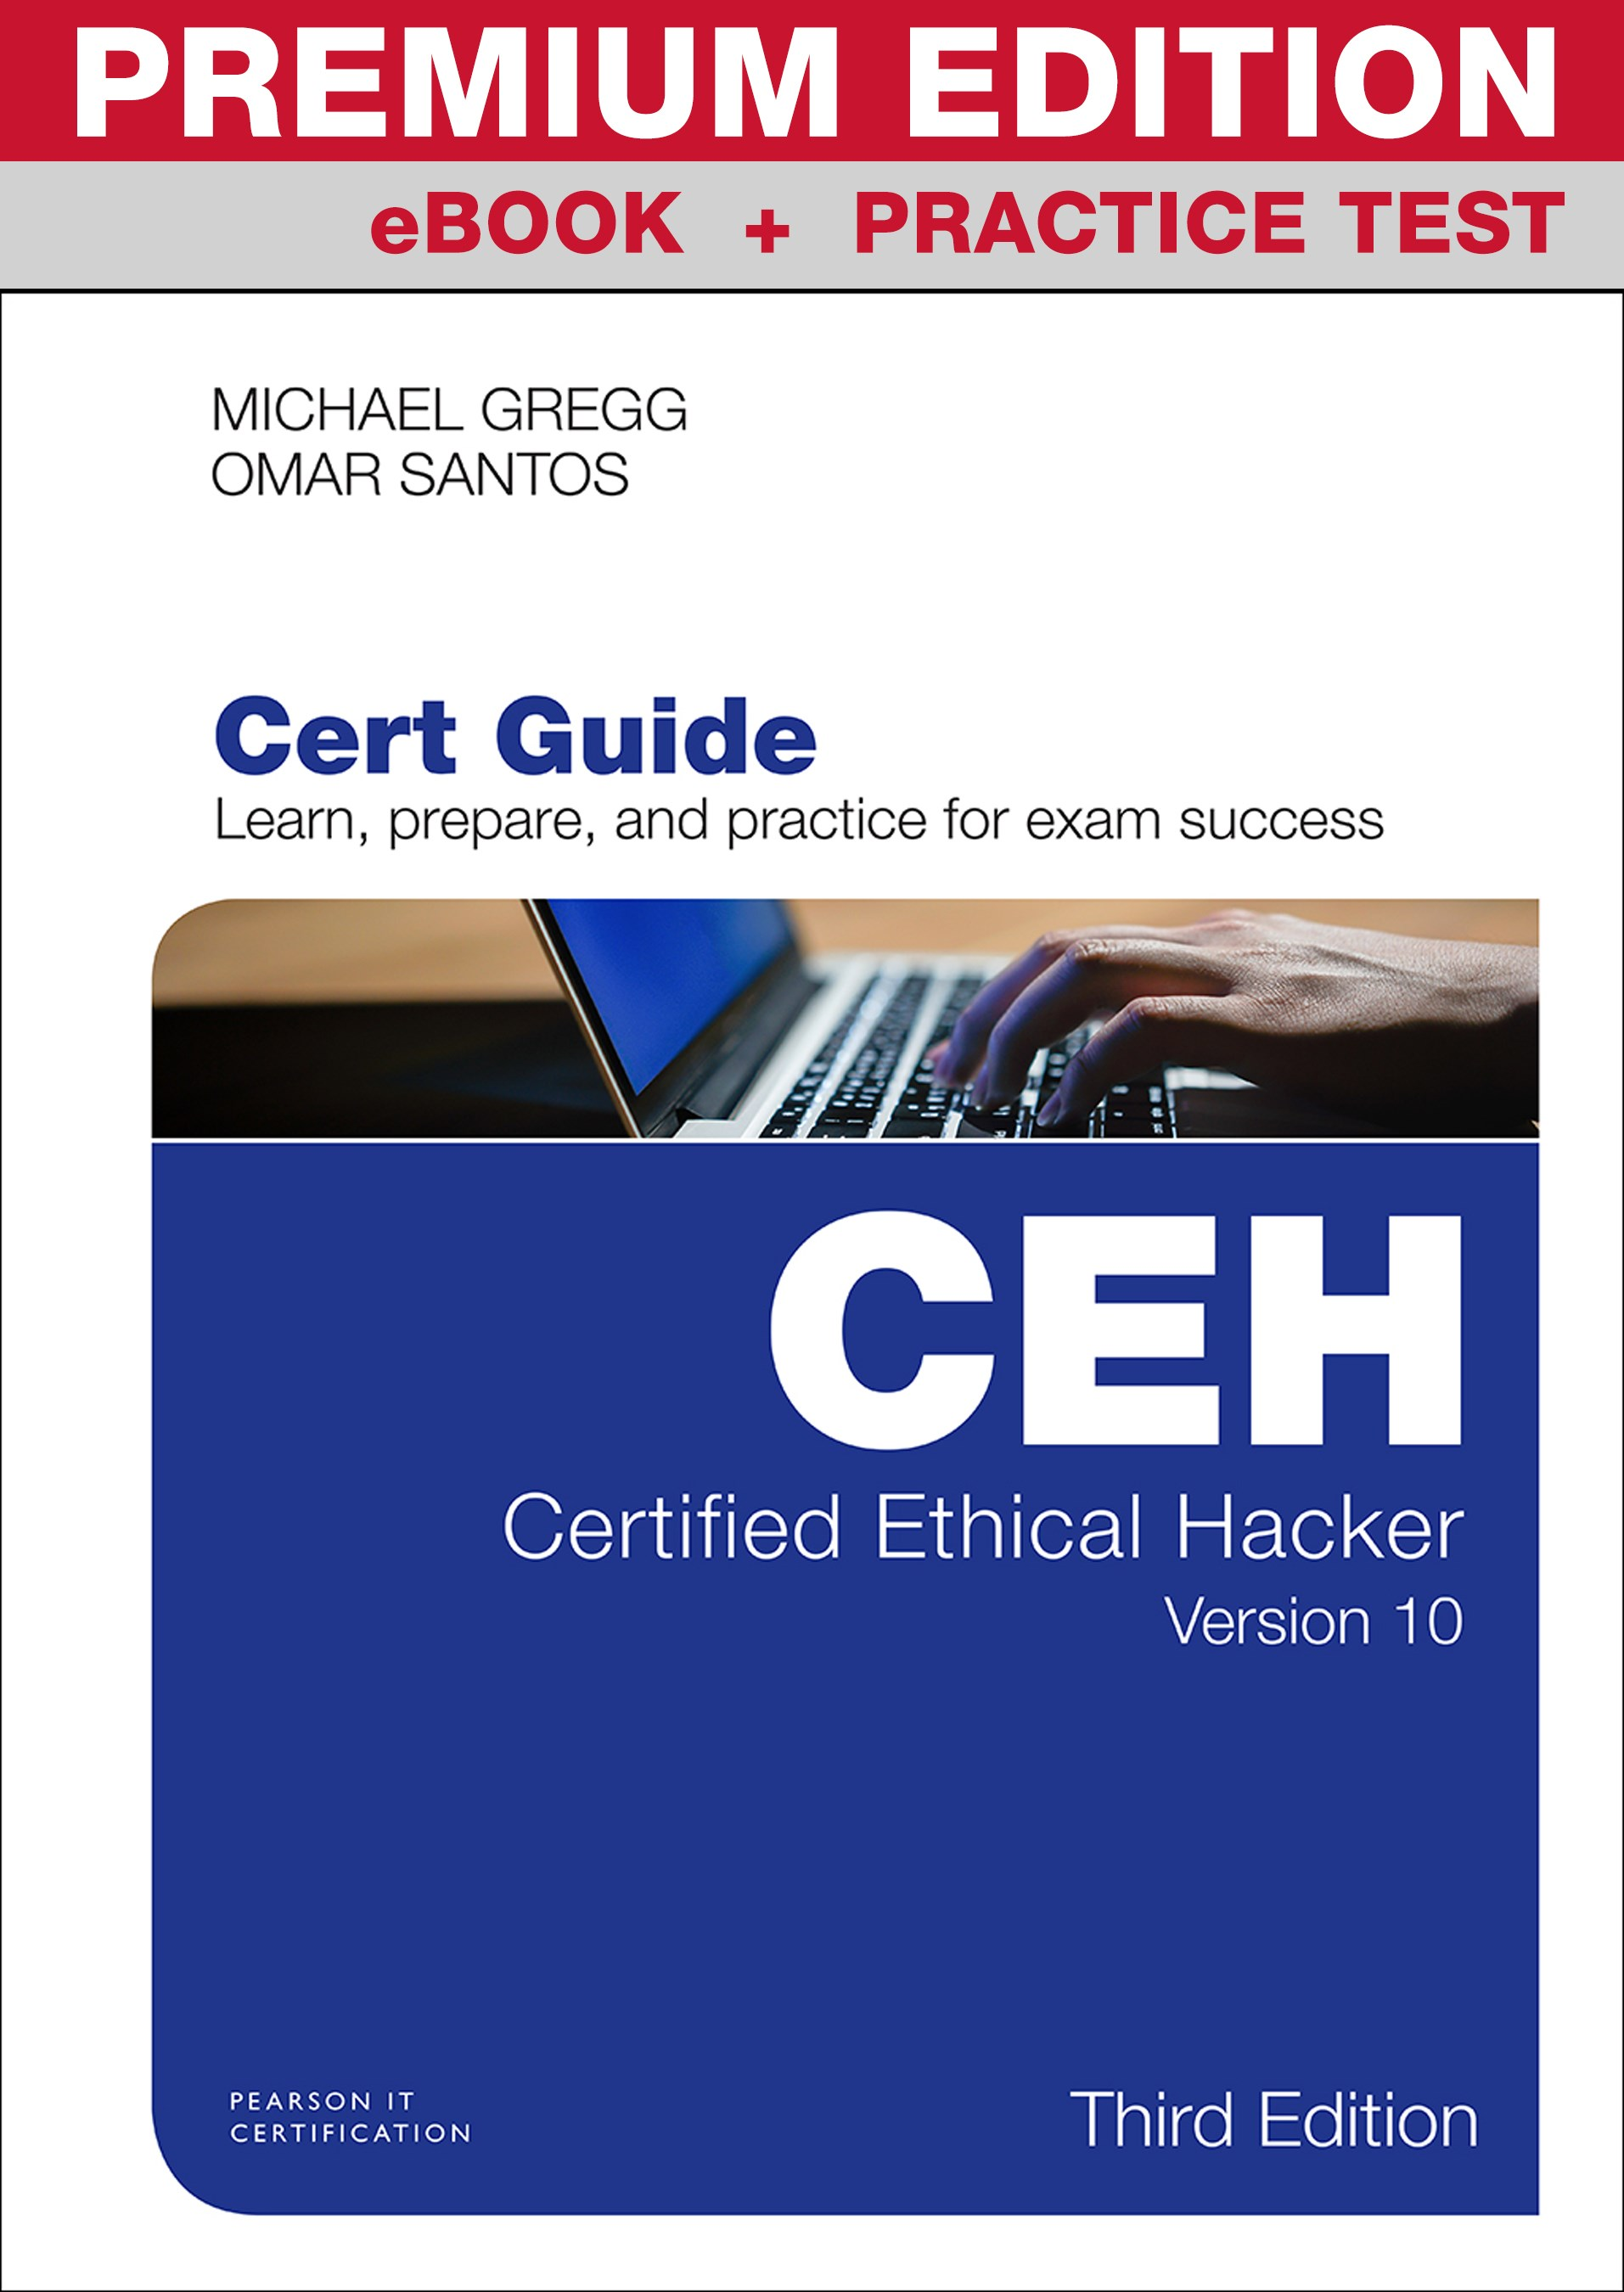 Certified Ethical Hacker (CEH) Version 10 Cert Guide Premium Edition and Practice Tests, 3rd Edition